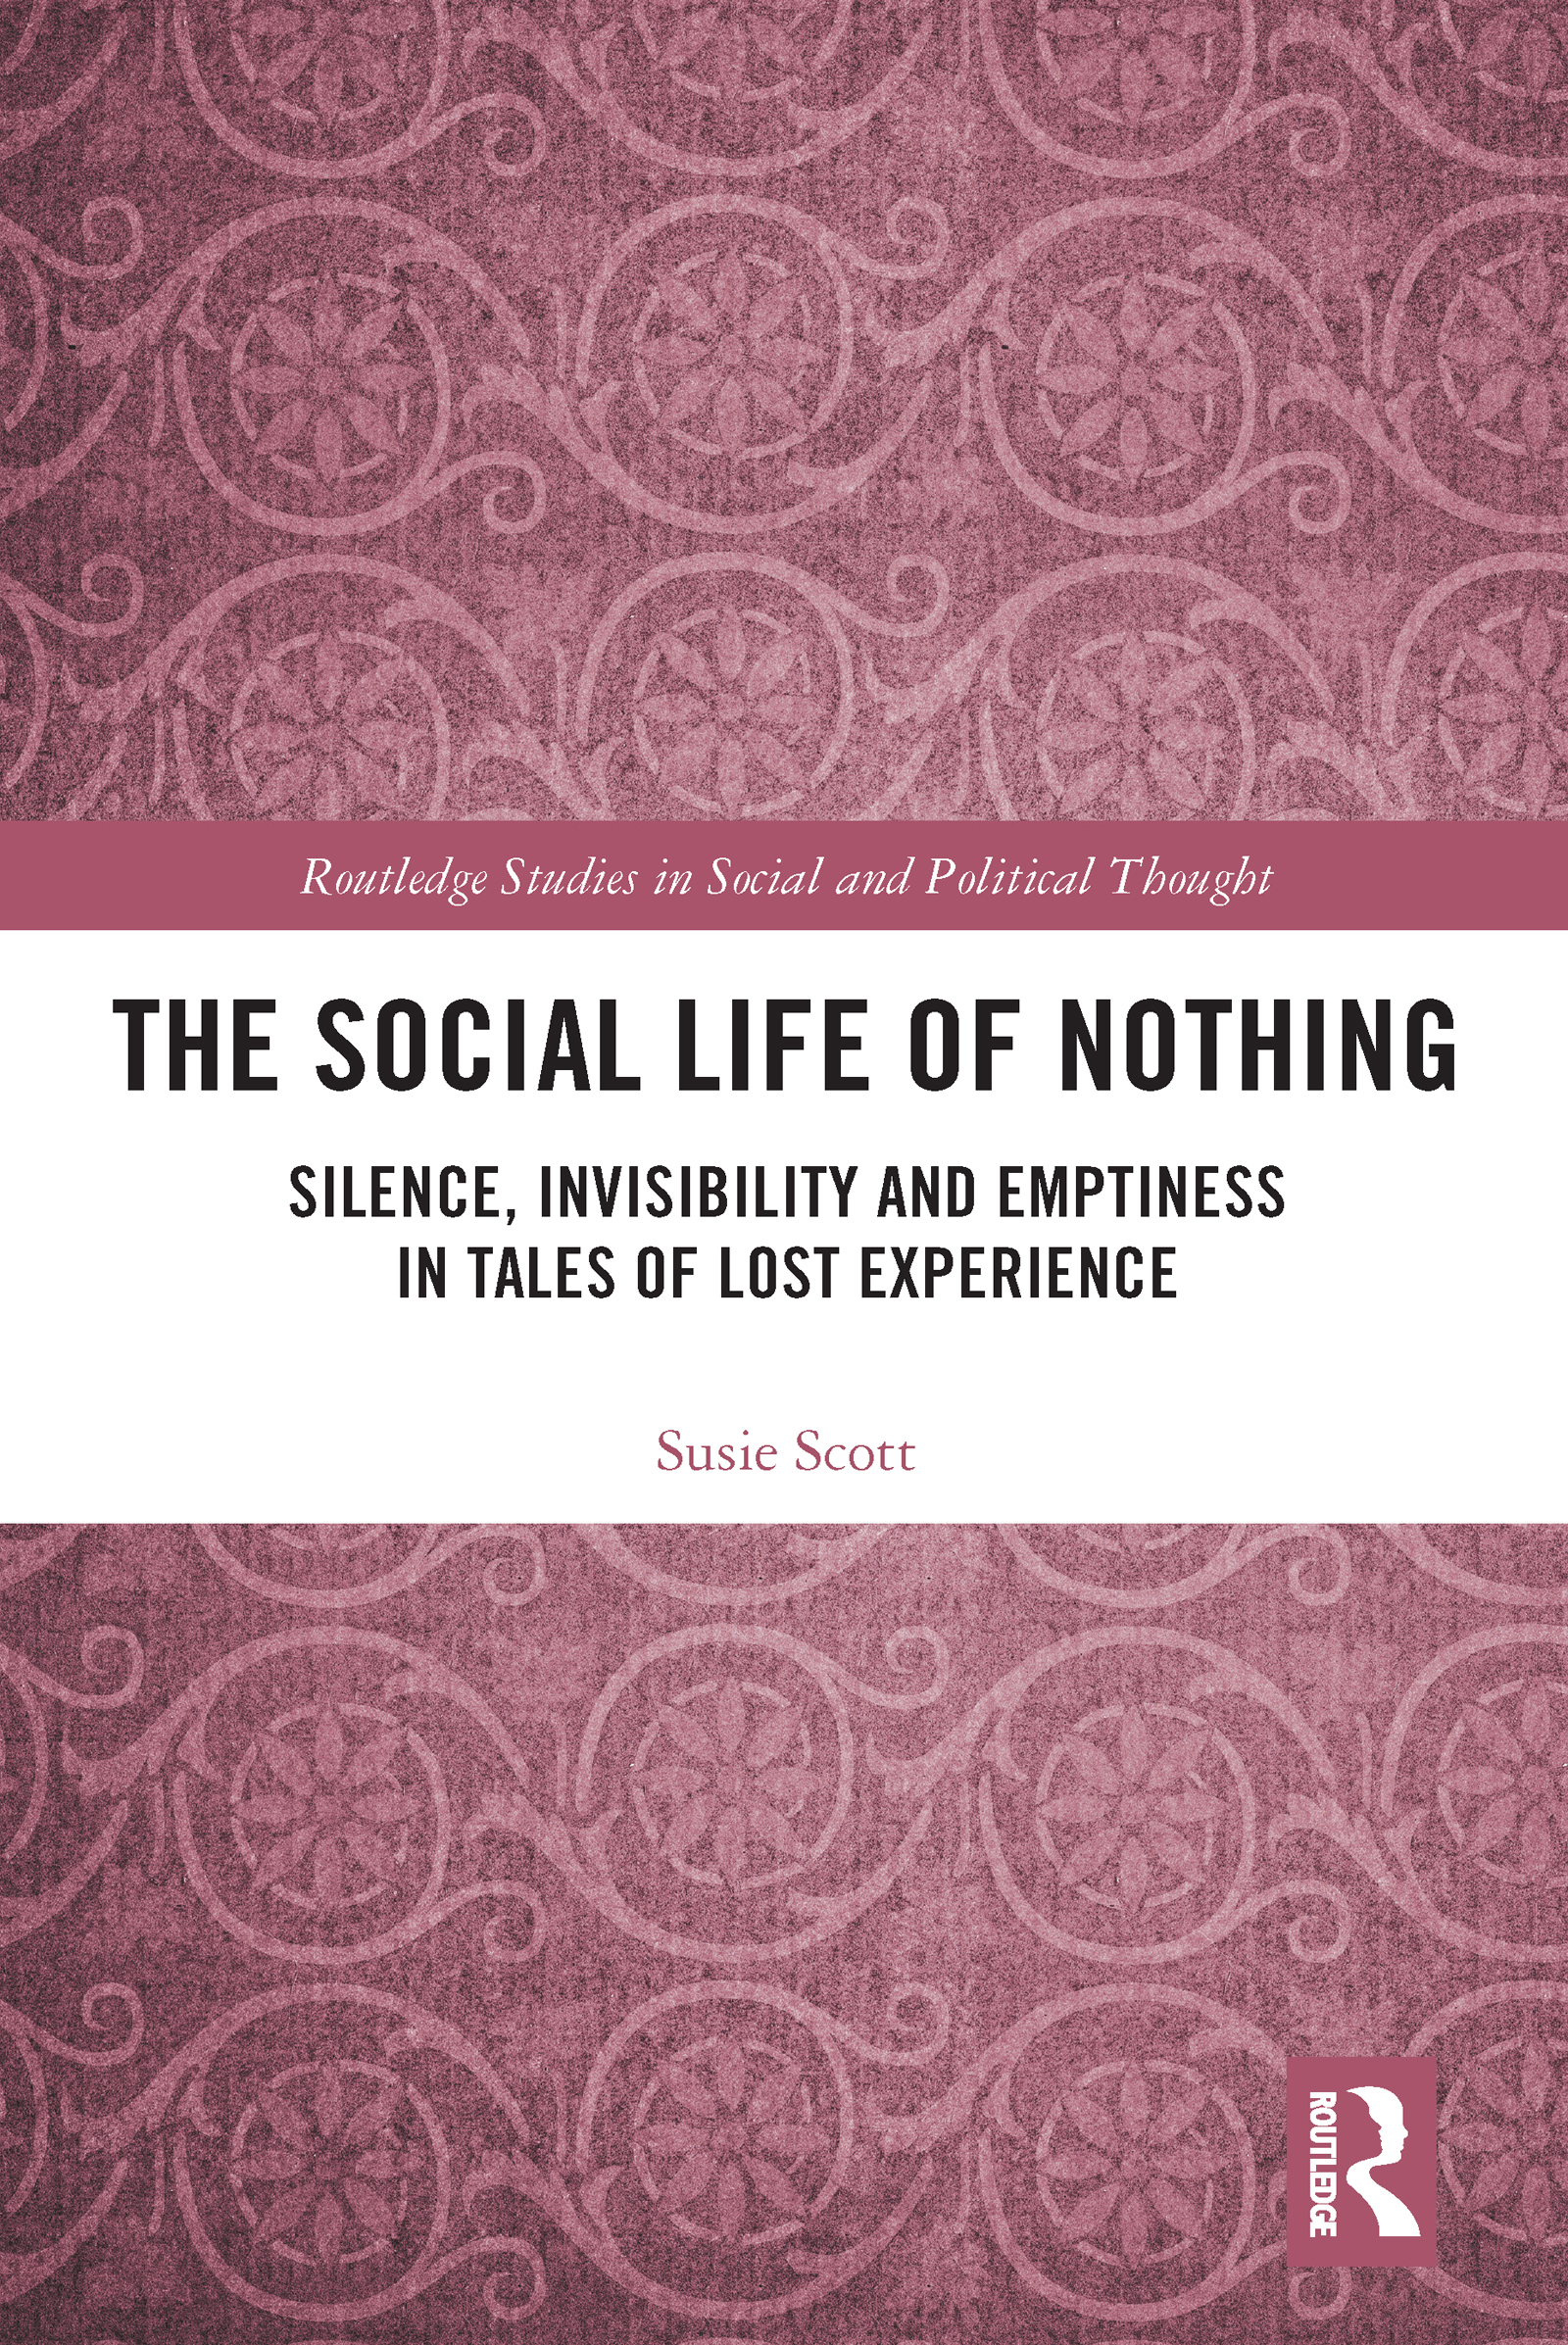 The Social Life of Nothing